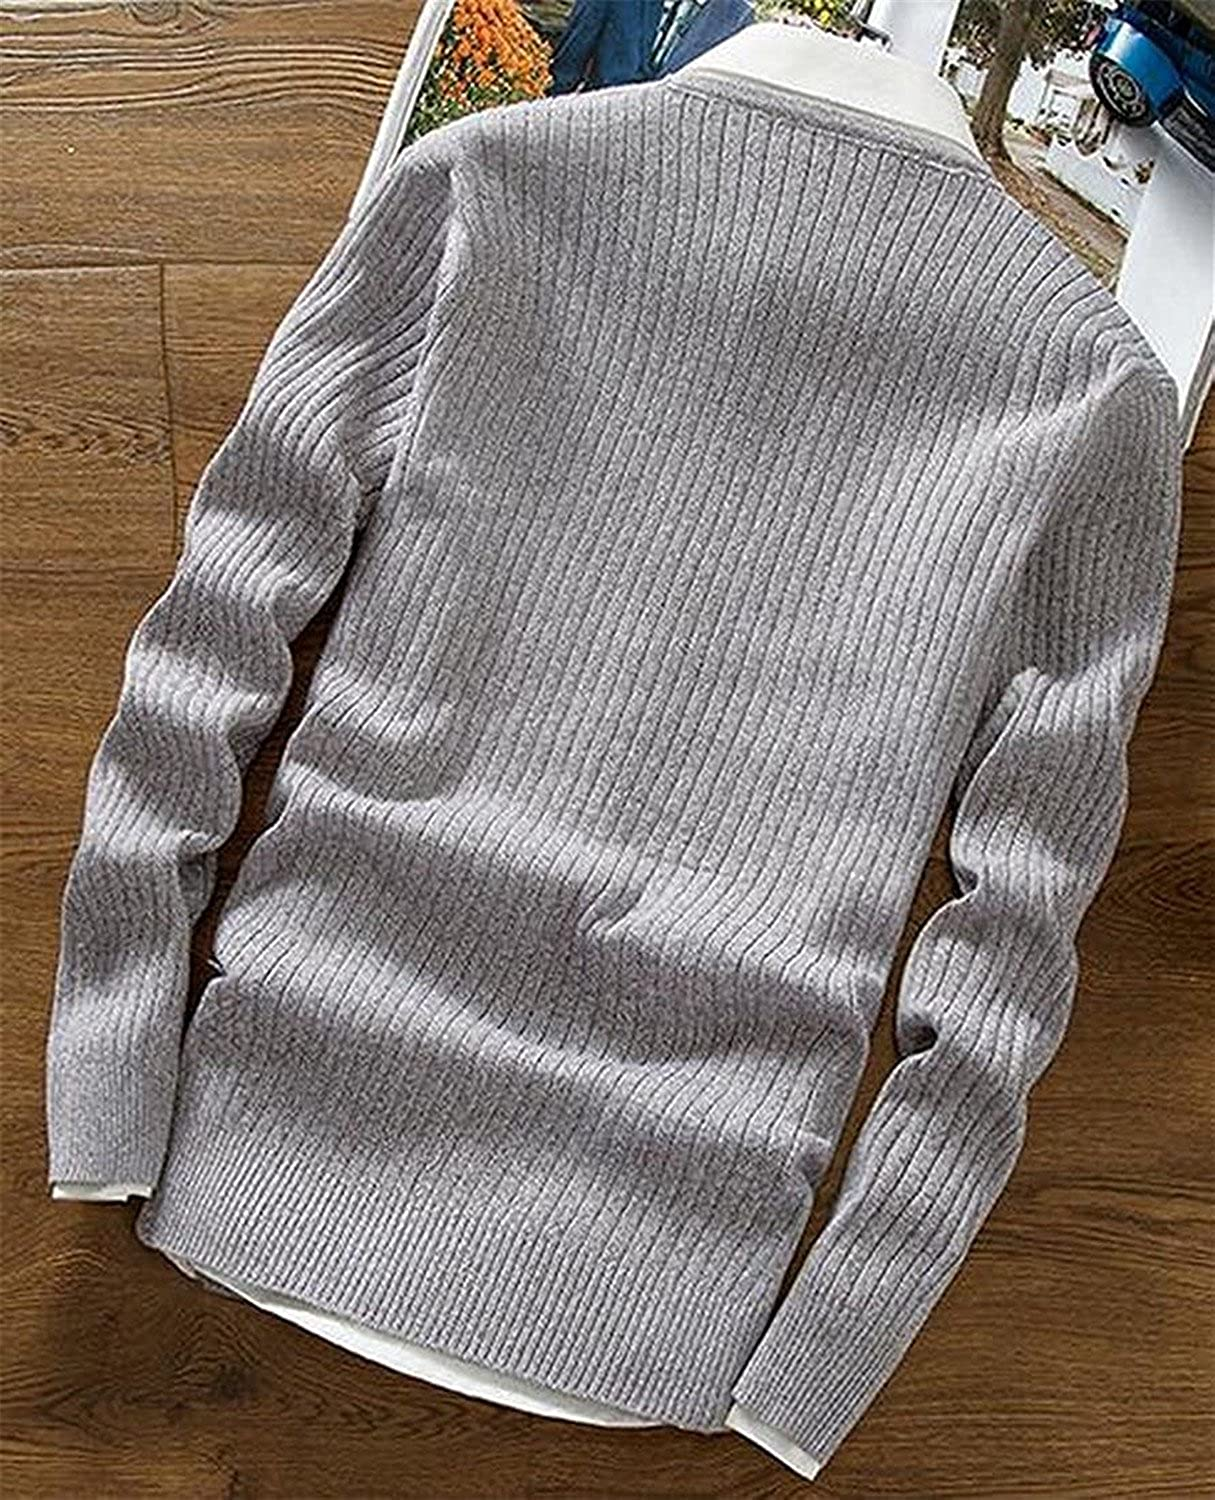 Robert Reyna Unique Men V NNeck Cable Knit Slim Fit Long Sleeve Retro Pullover Sweater